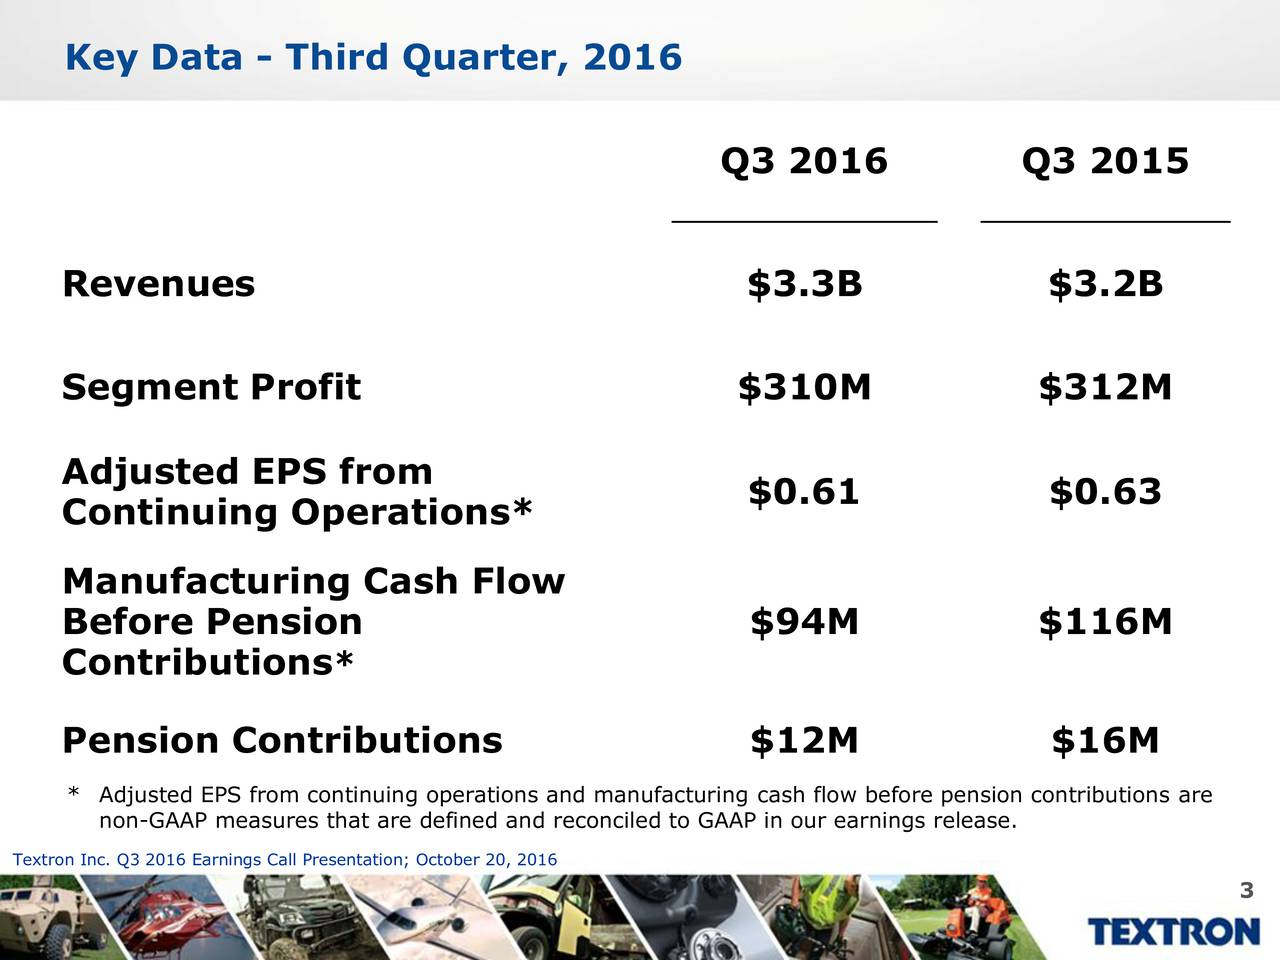 Q3 2016 Q3 2015 Revenues $3.3B $3.2B Segment Profit $310M $312M Adjusted EPS from $0.61 $0.63 Continuing Operations* Manufacturing Cash Flow Before Pension $94M $116M Contributions* Pension Contributions $12M $16M * Adjusted EPS from continuing operations and manufacturing cash flow before pension contributions are non-GAAP measures that are defined and reconciled to GAAP in our earnings release. Textron Inc. Q3 2016 Earnings Call Presentation; October 20, 2016 3